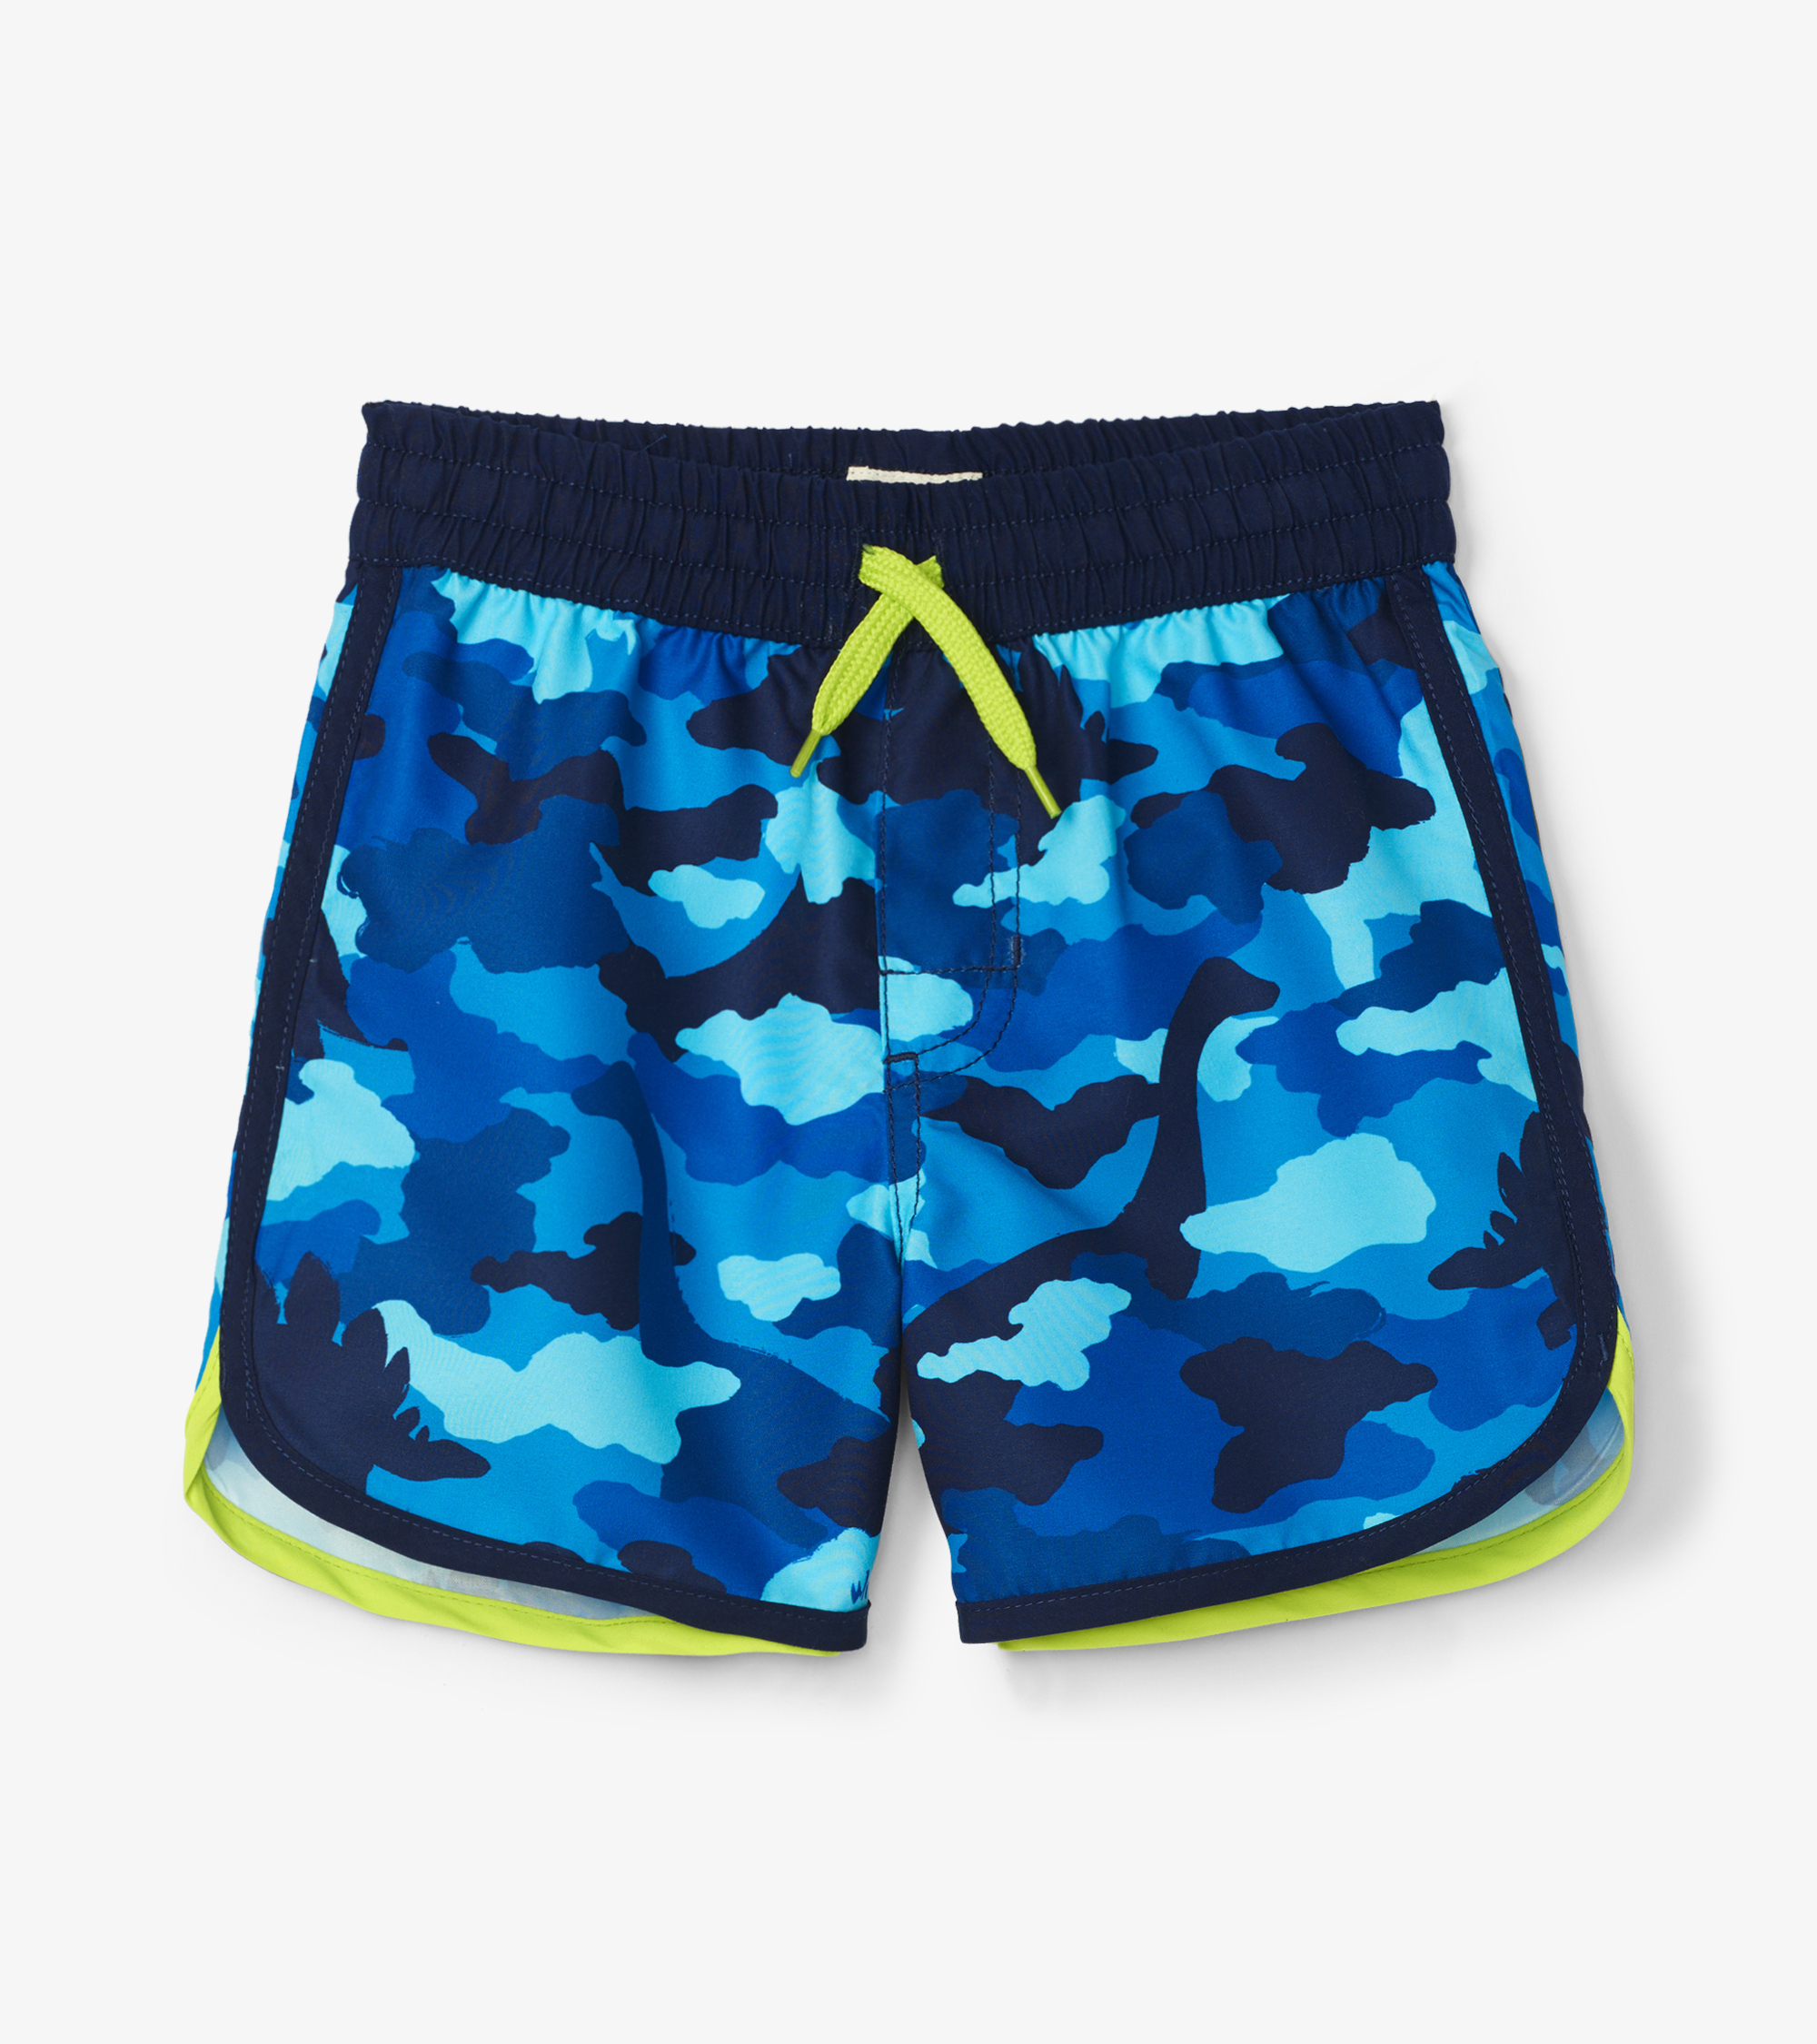 NOW £17 Hatley Dino Camo Swim Shorts (was £25)